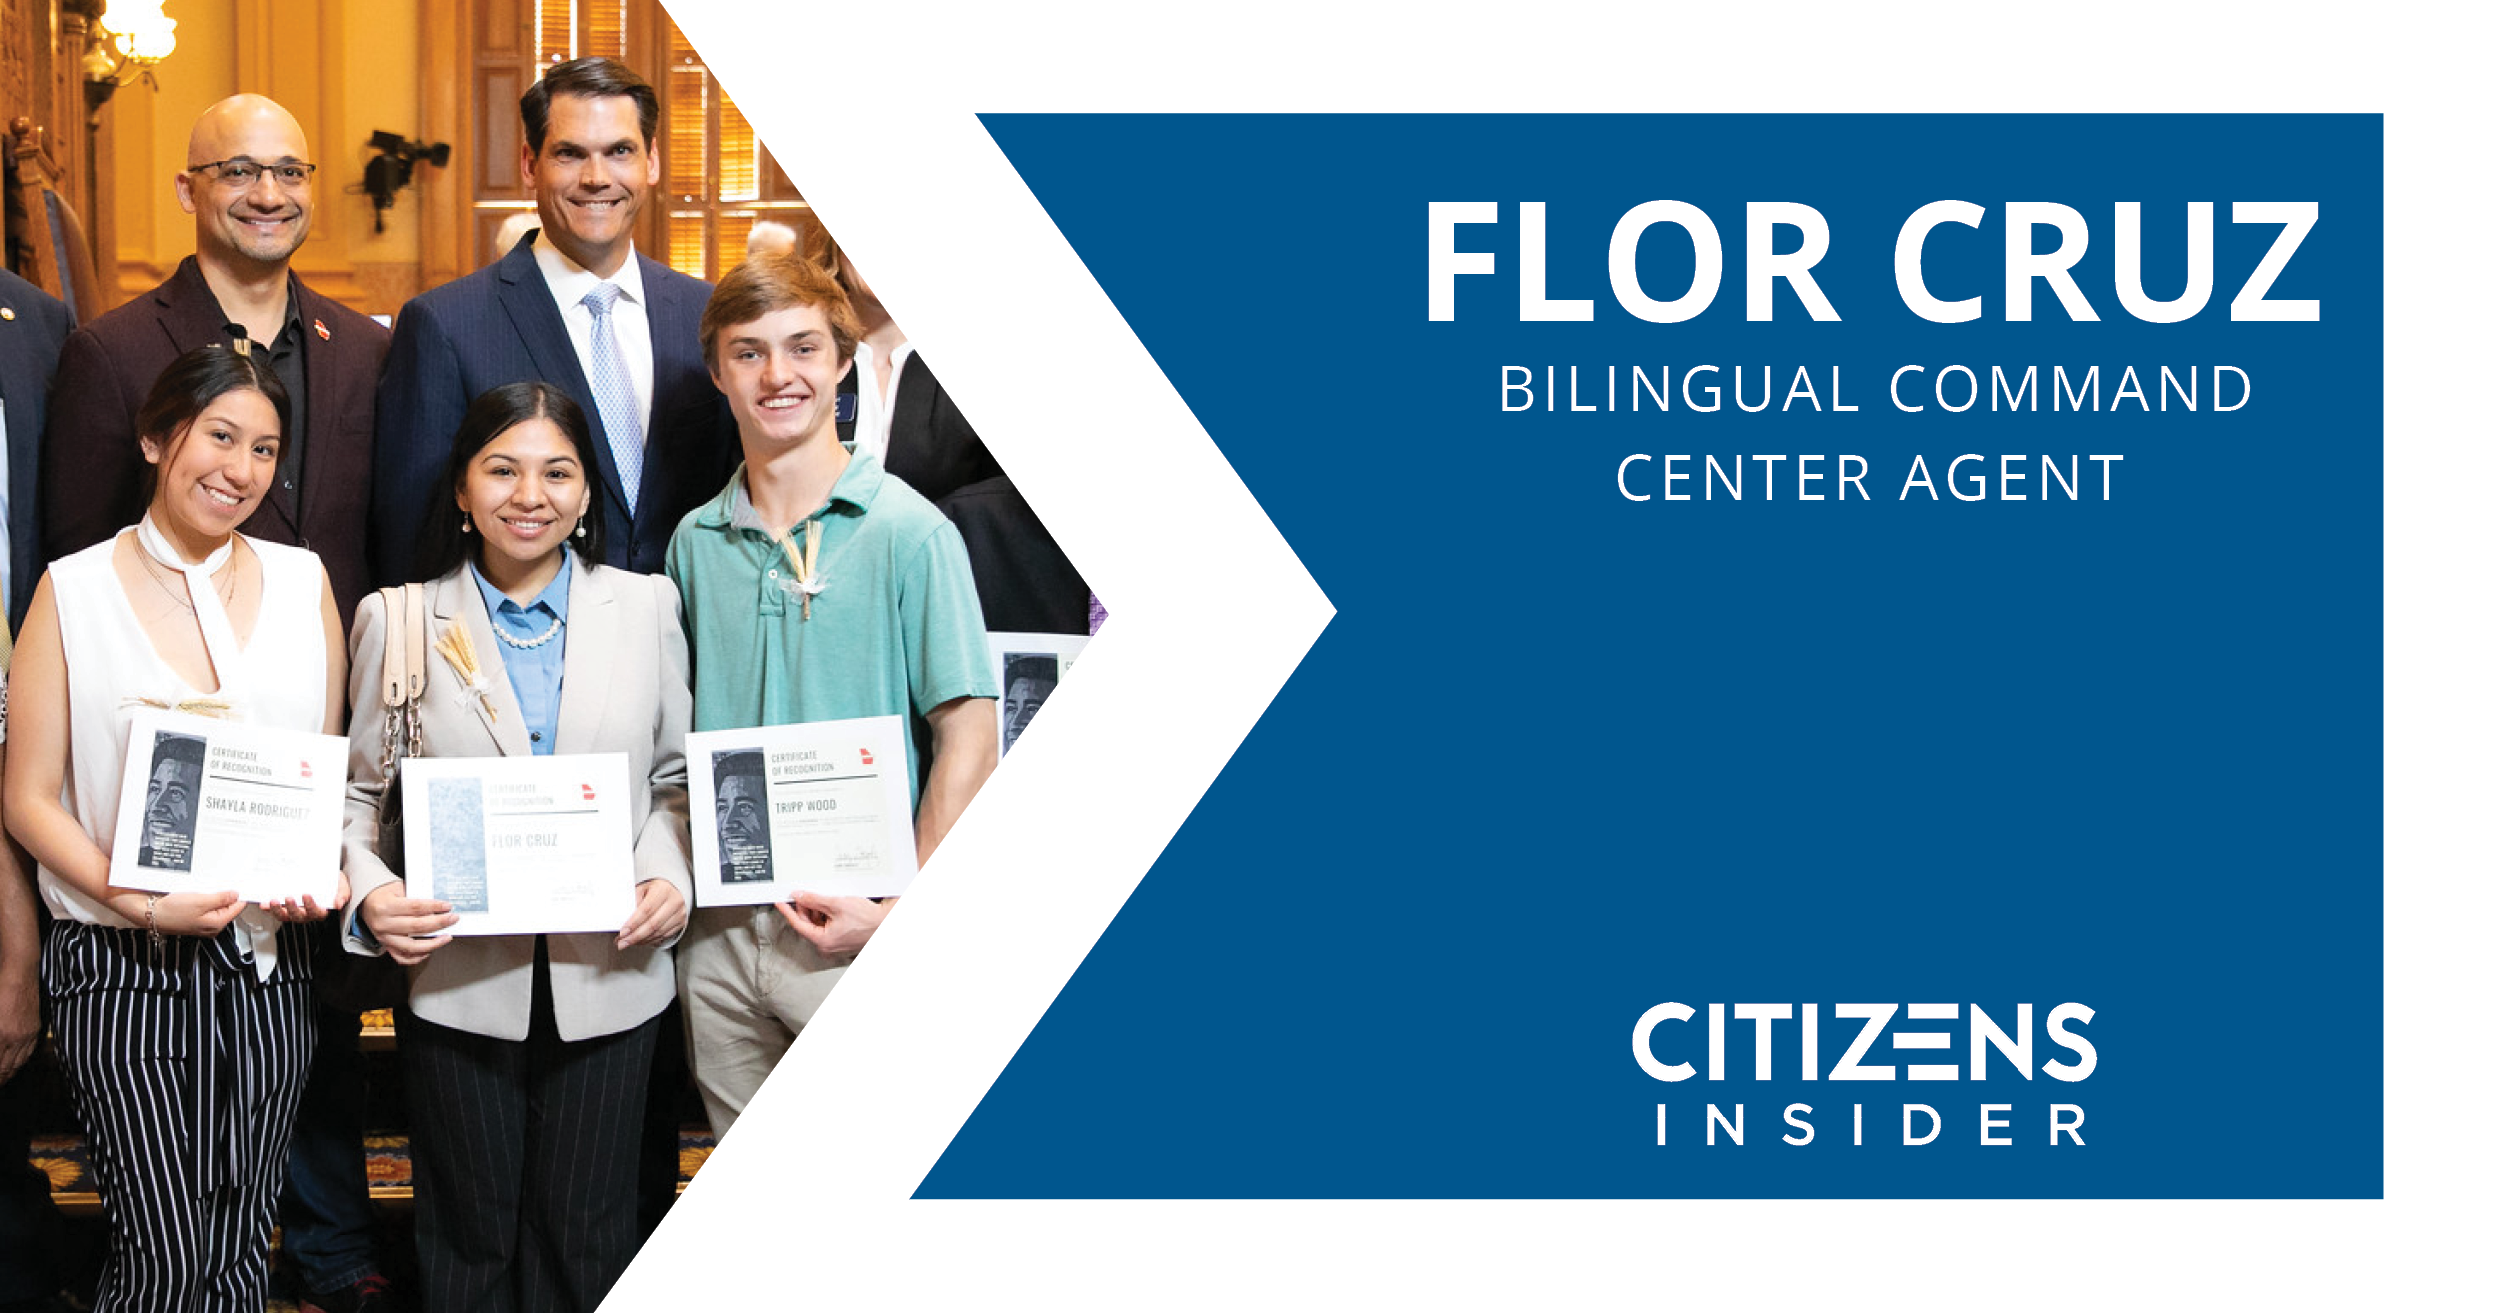 Citizens Insider: Flor Cruz